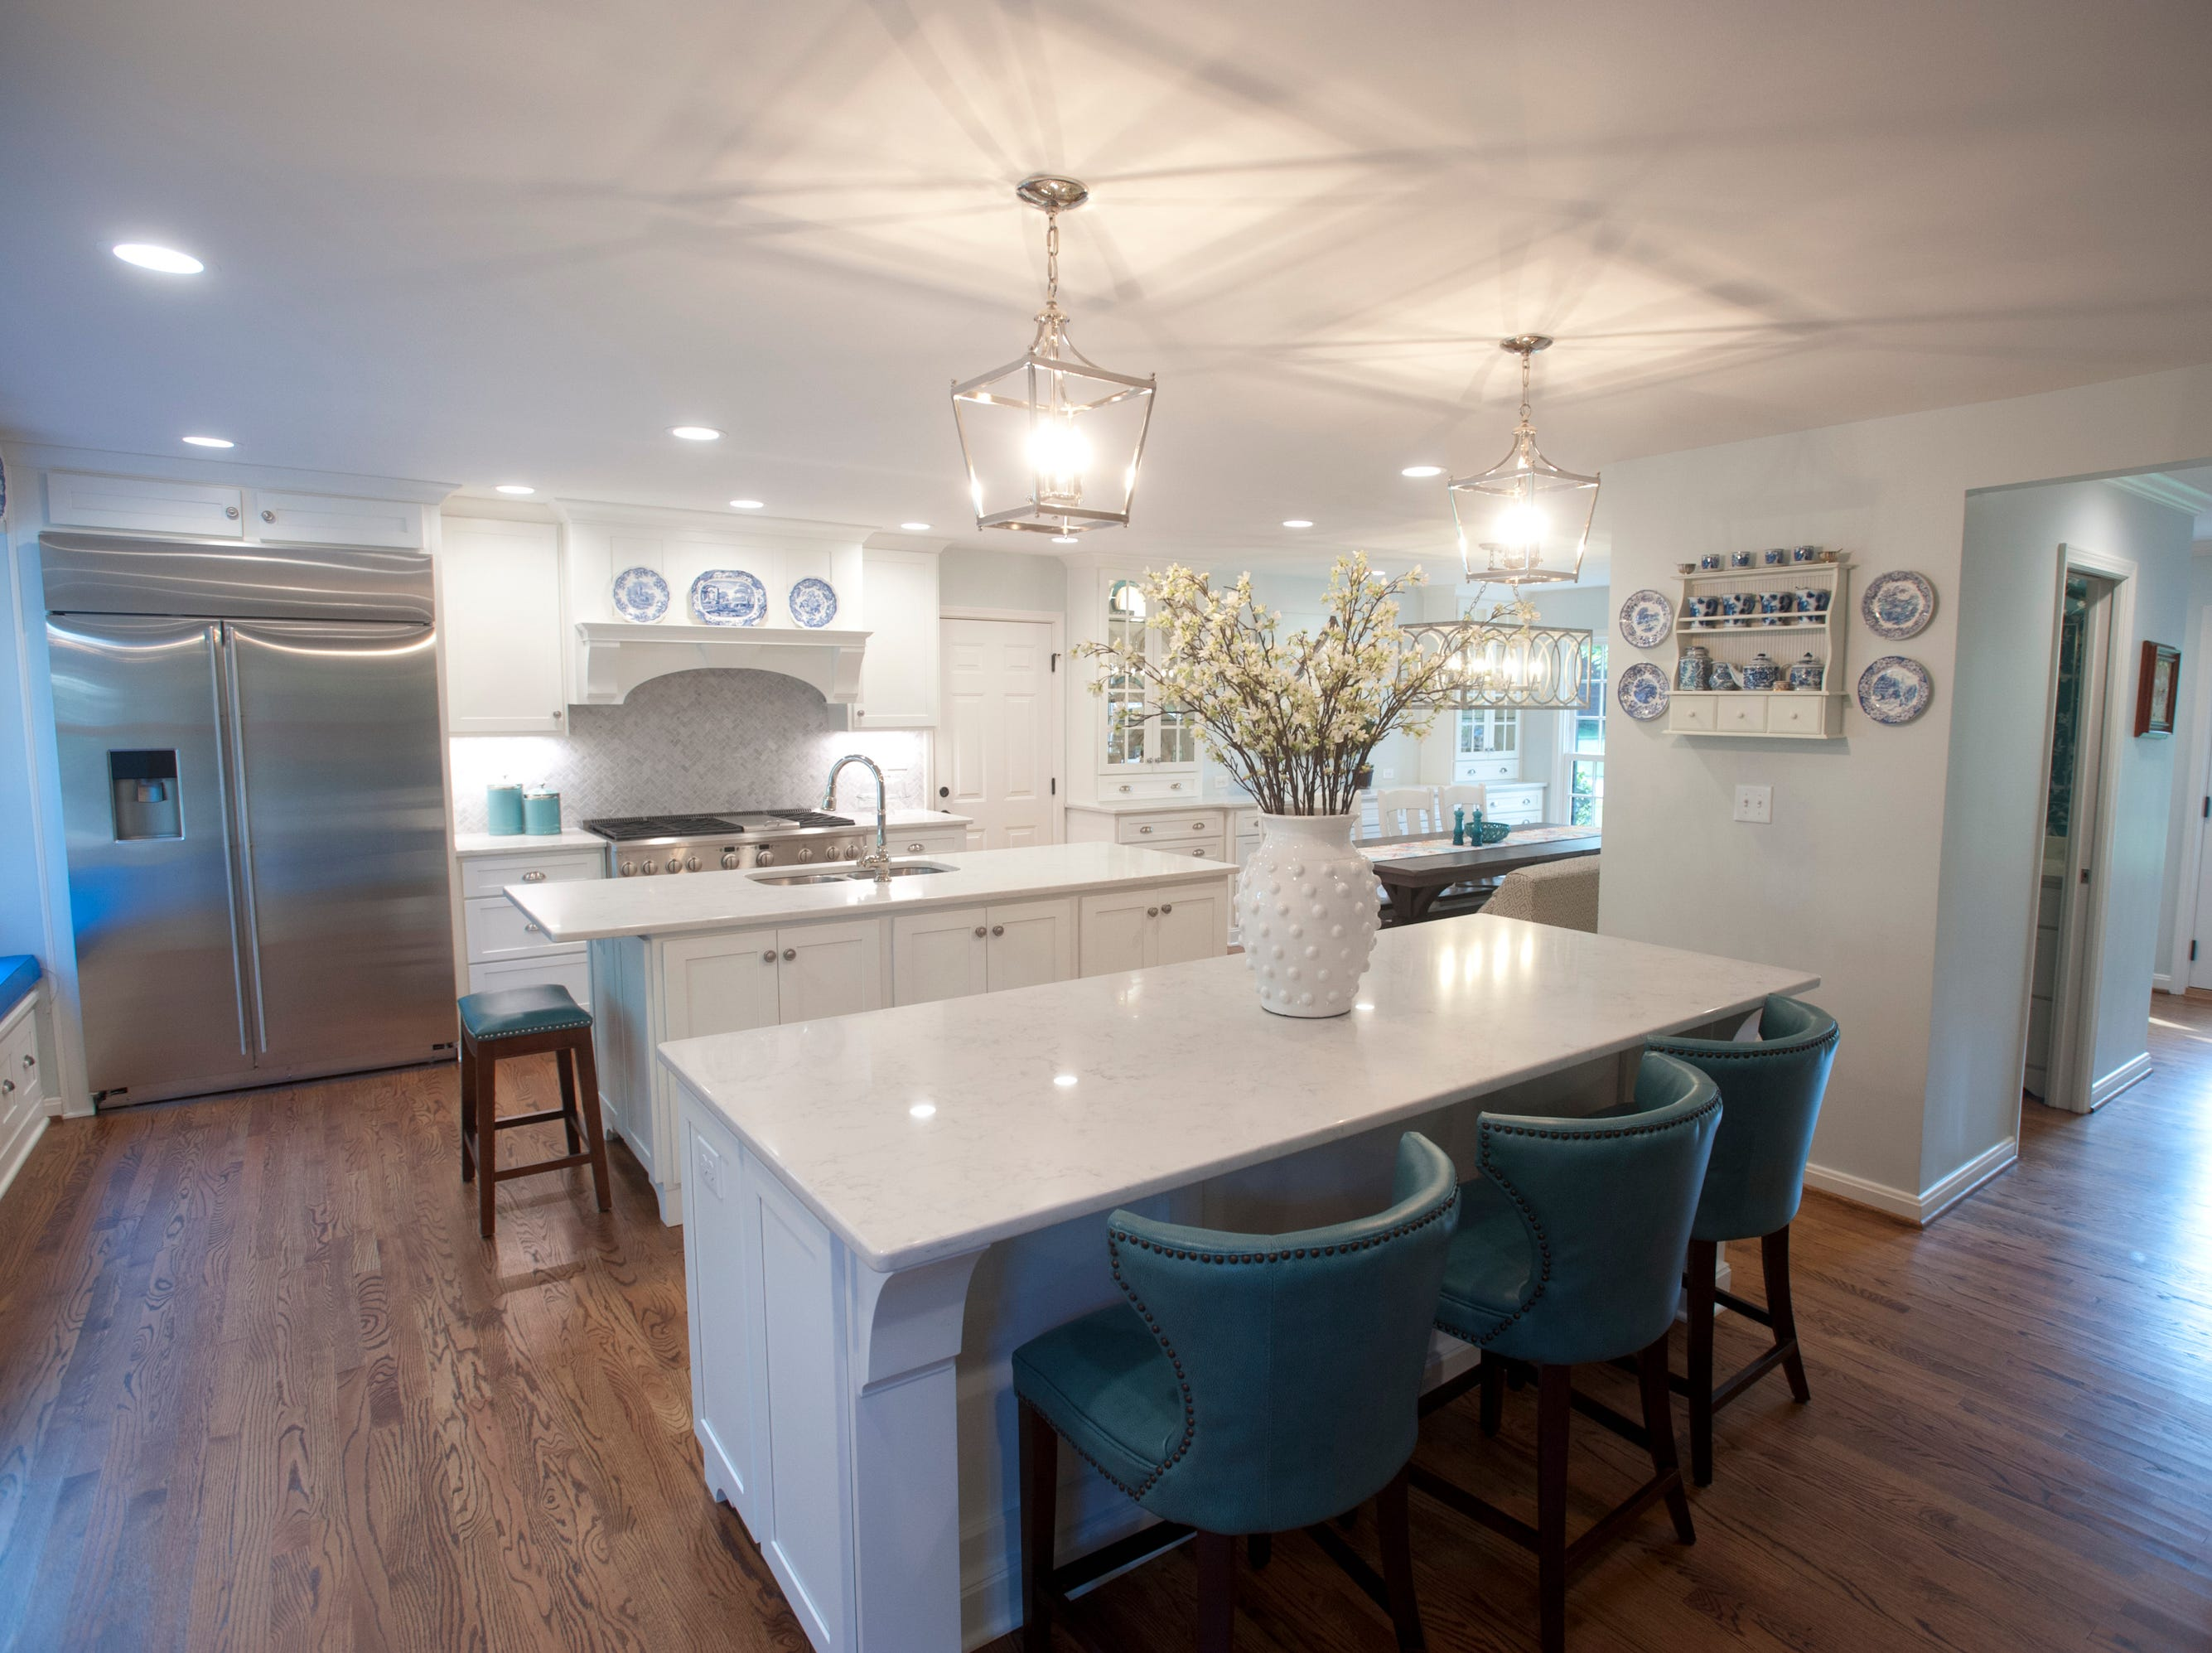 A second island between the kitchen and family room allows more storage and seating.